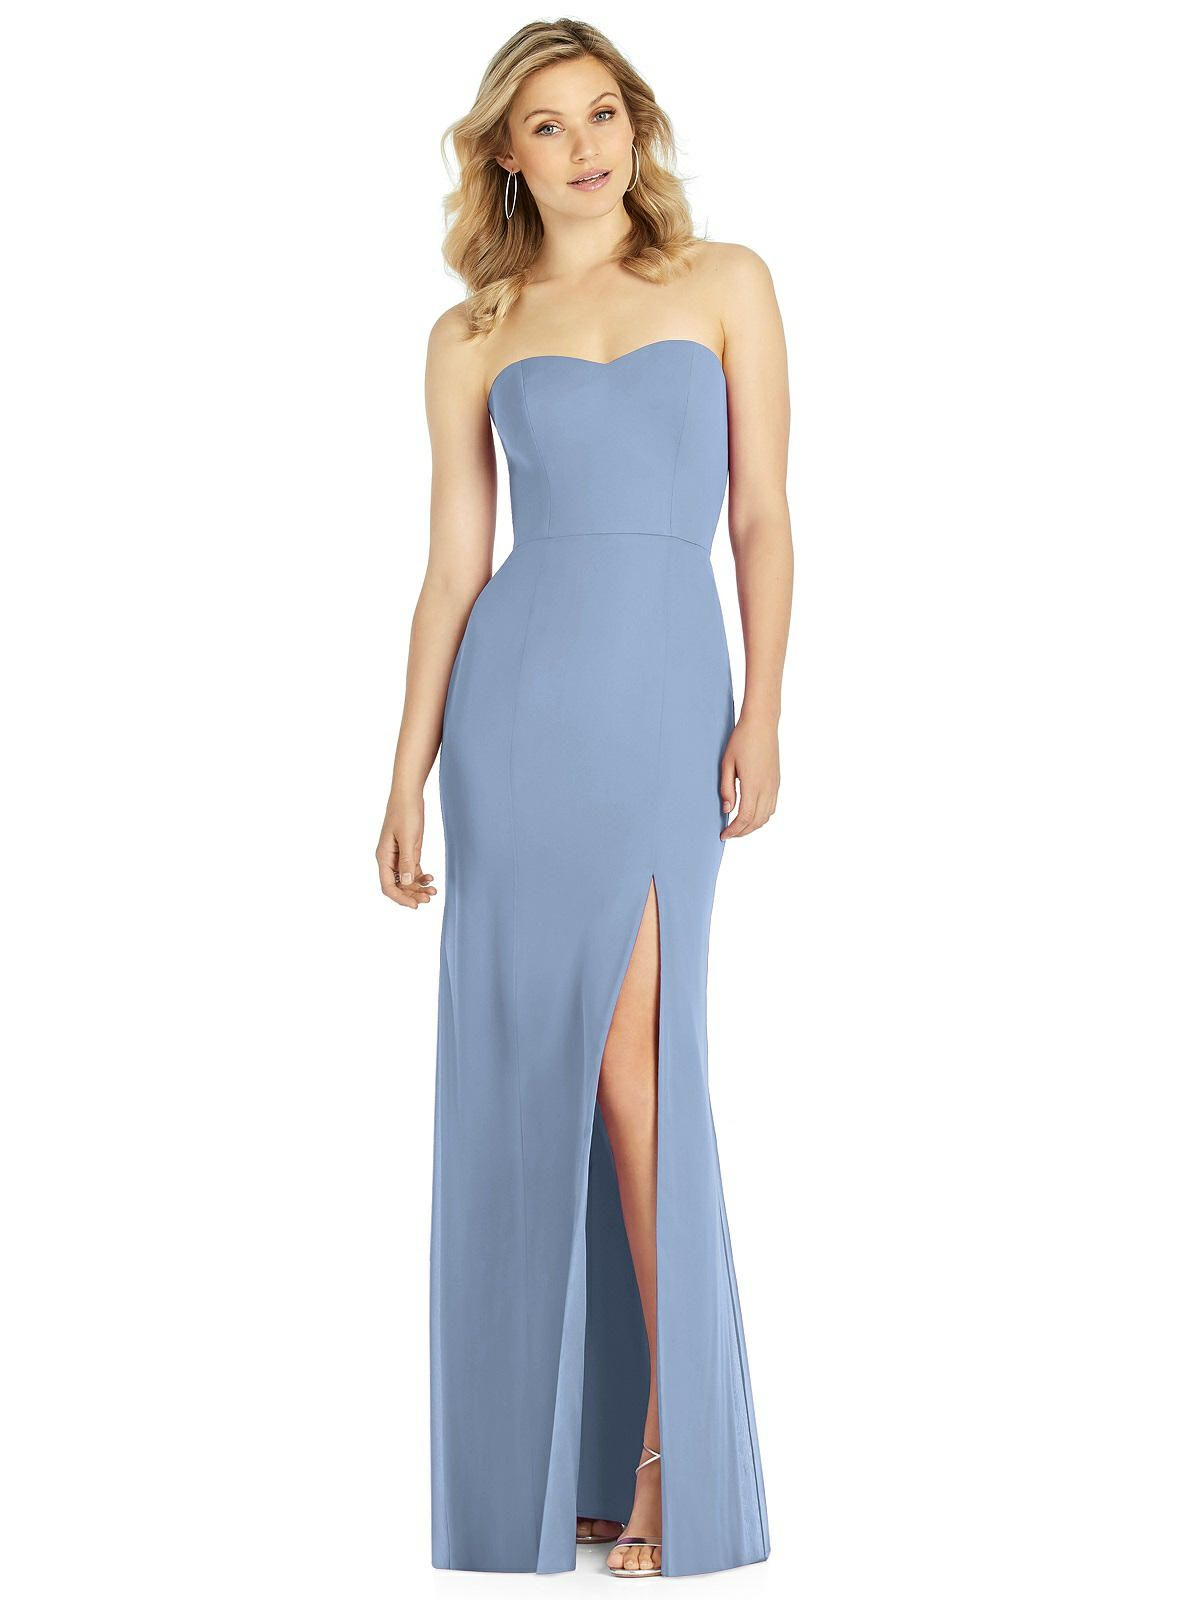 ff6bca9a5e After Six Bridesmaid Dress 6803 in 2019